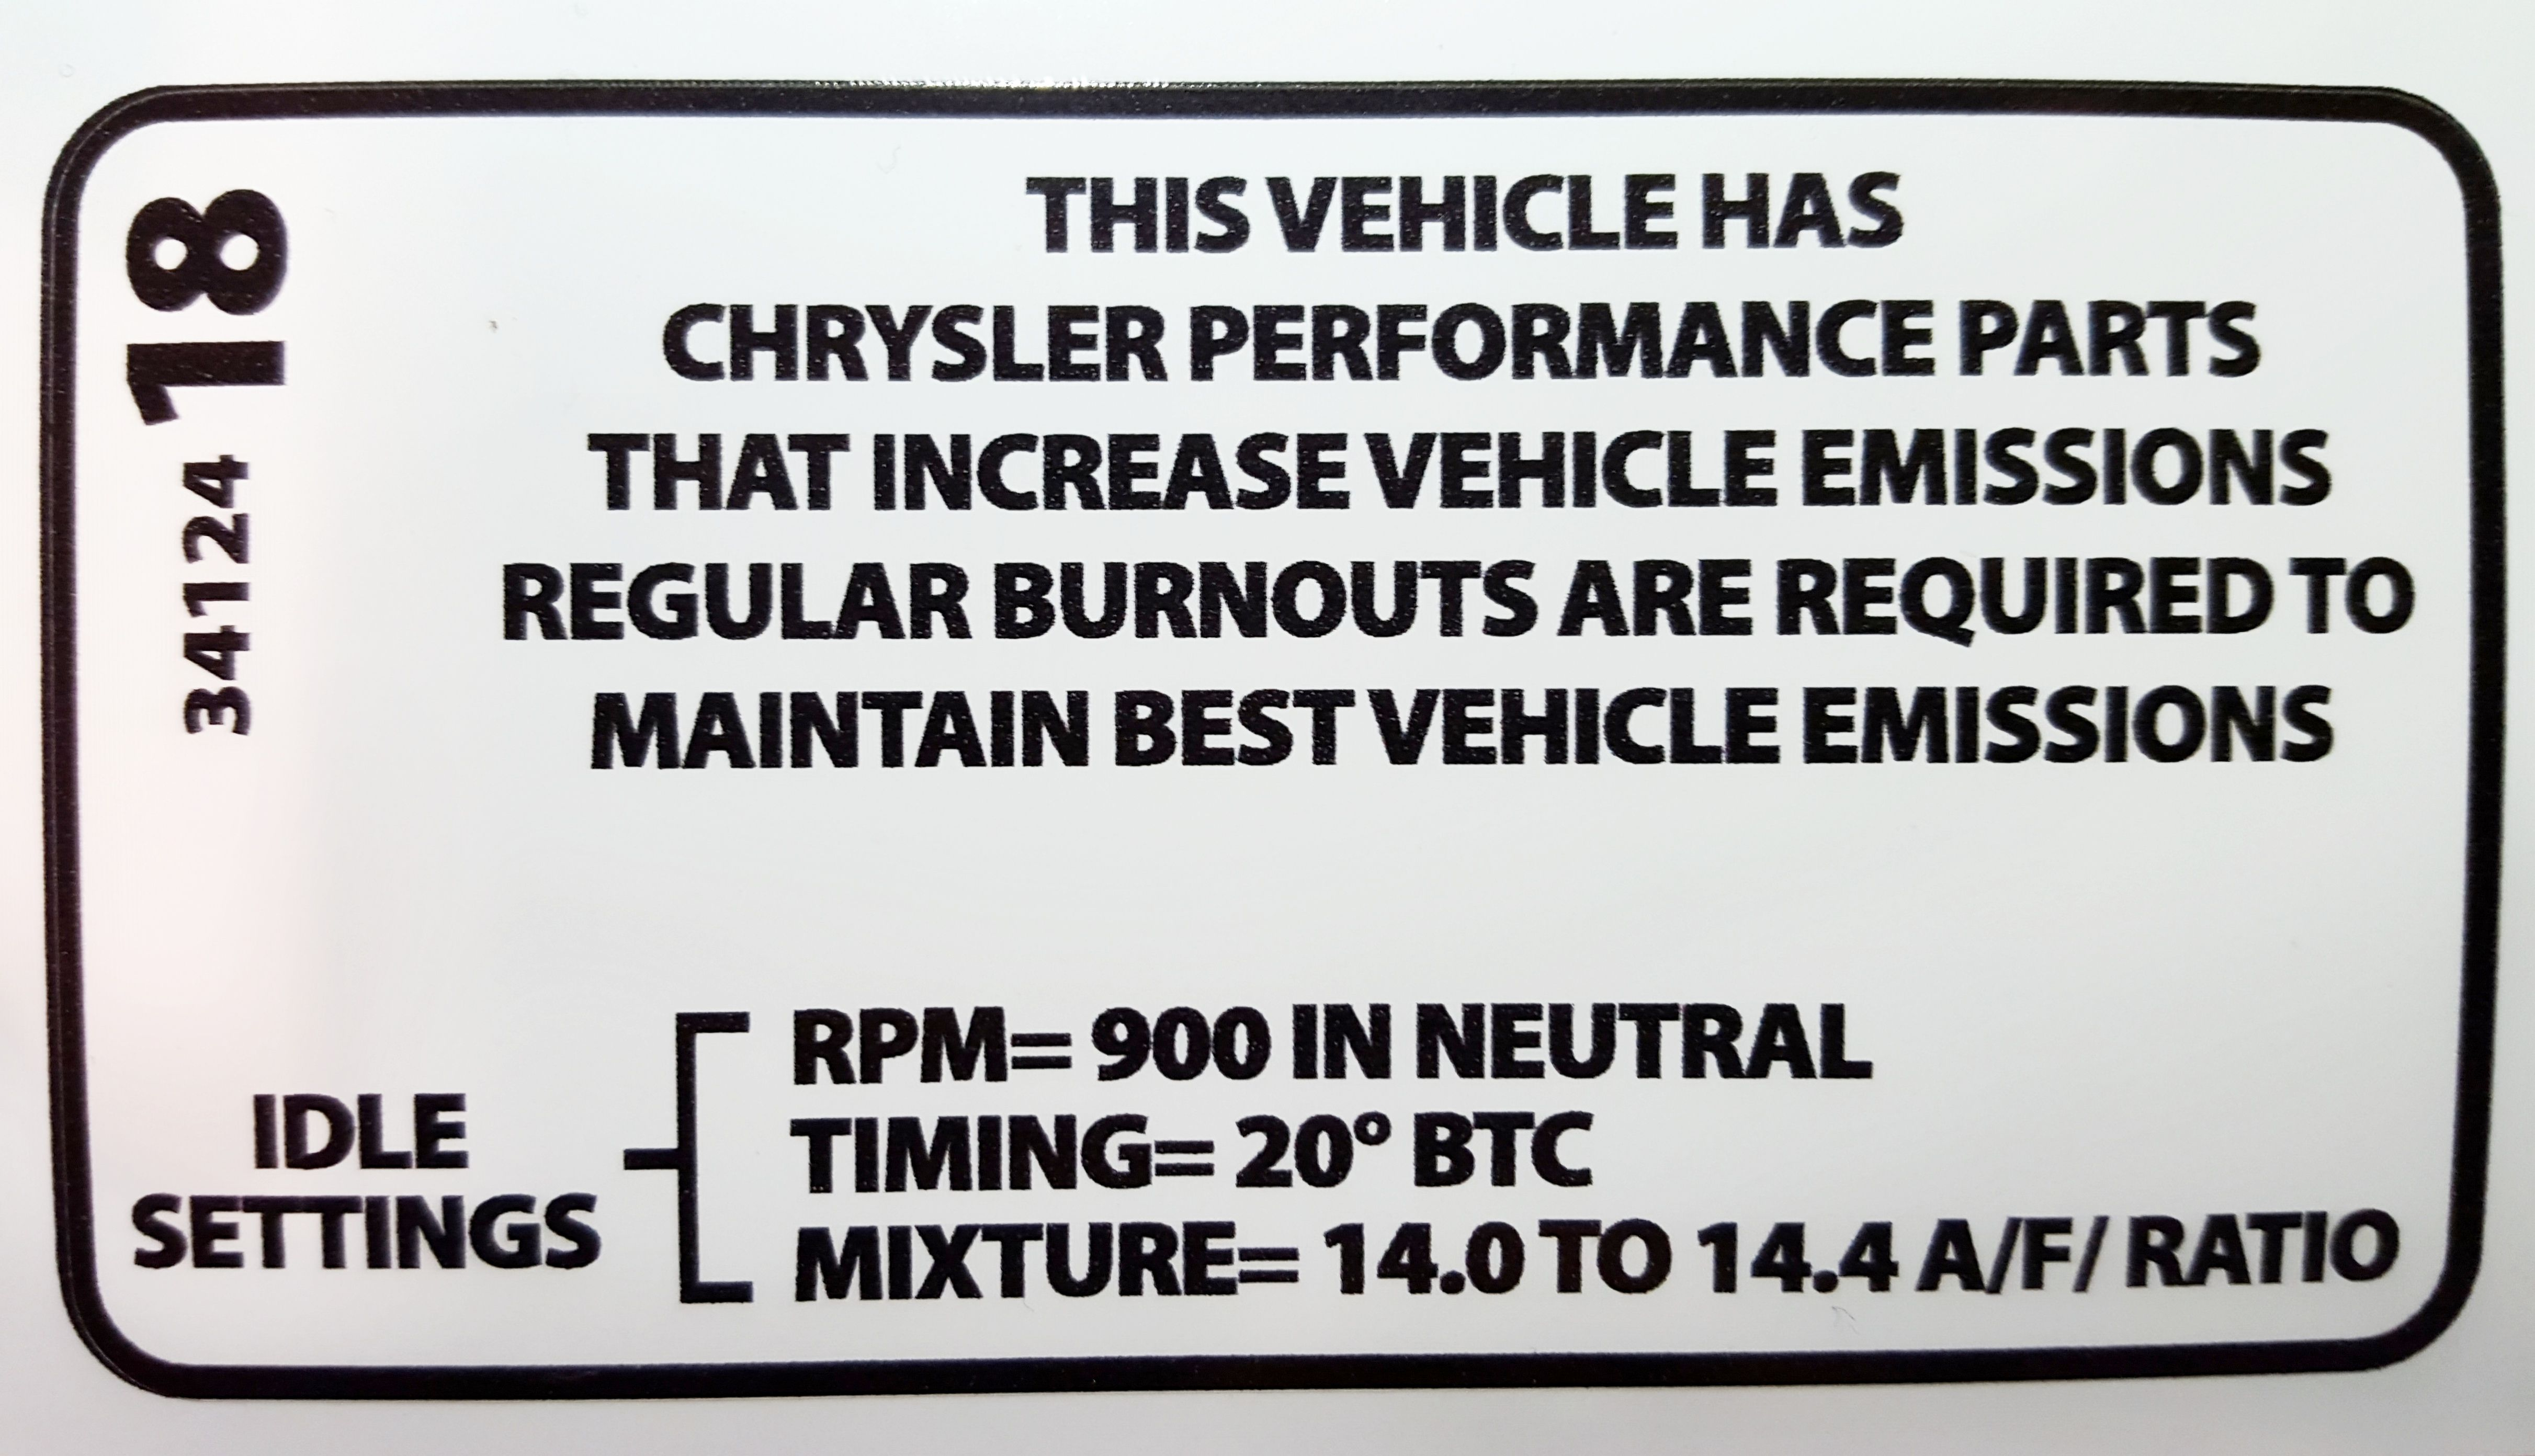 Chysler Emissions Decal